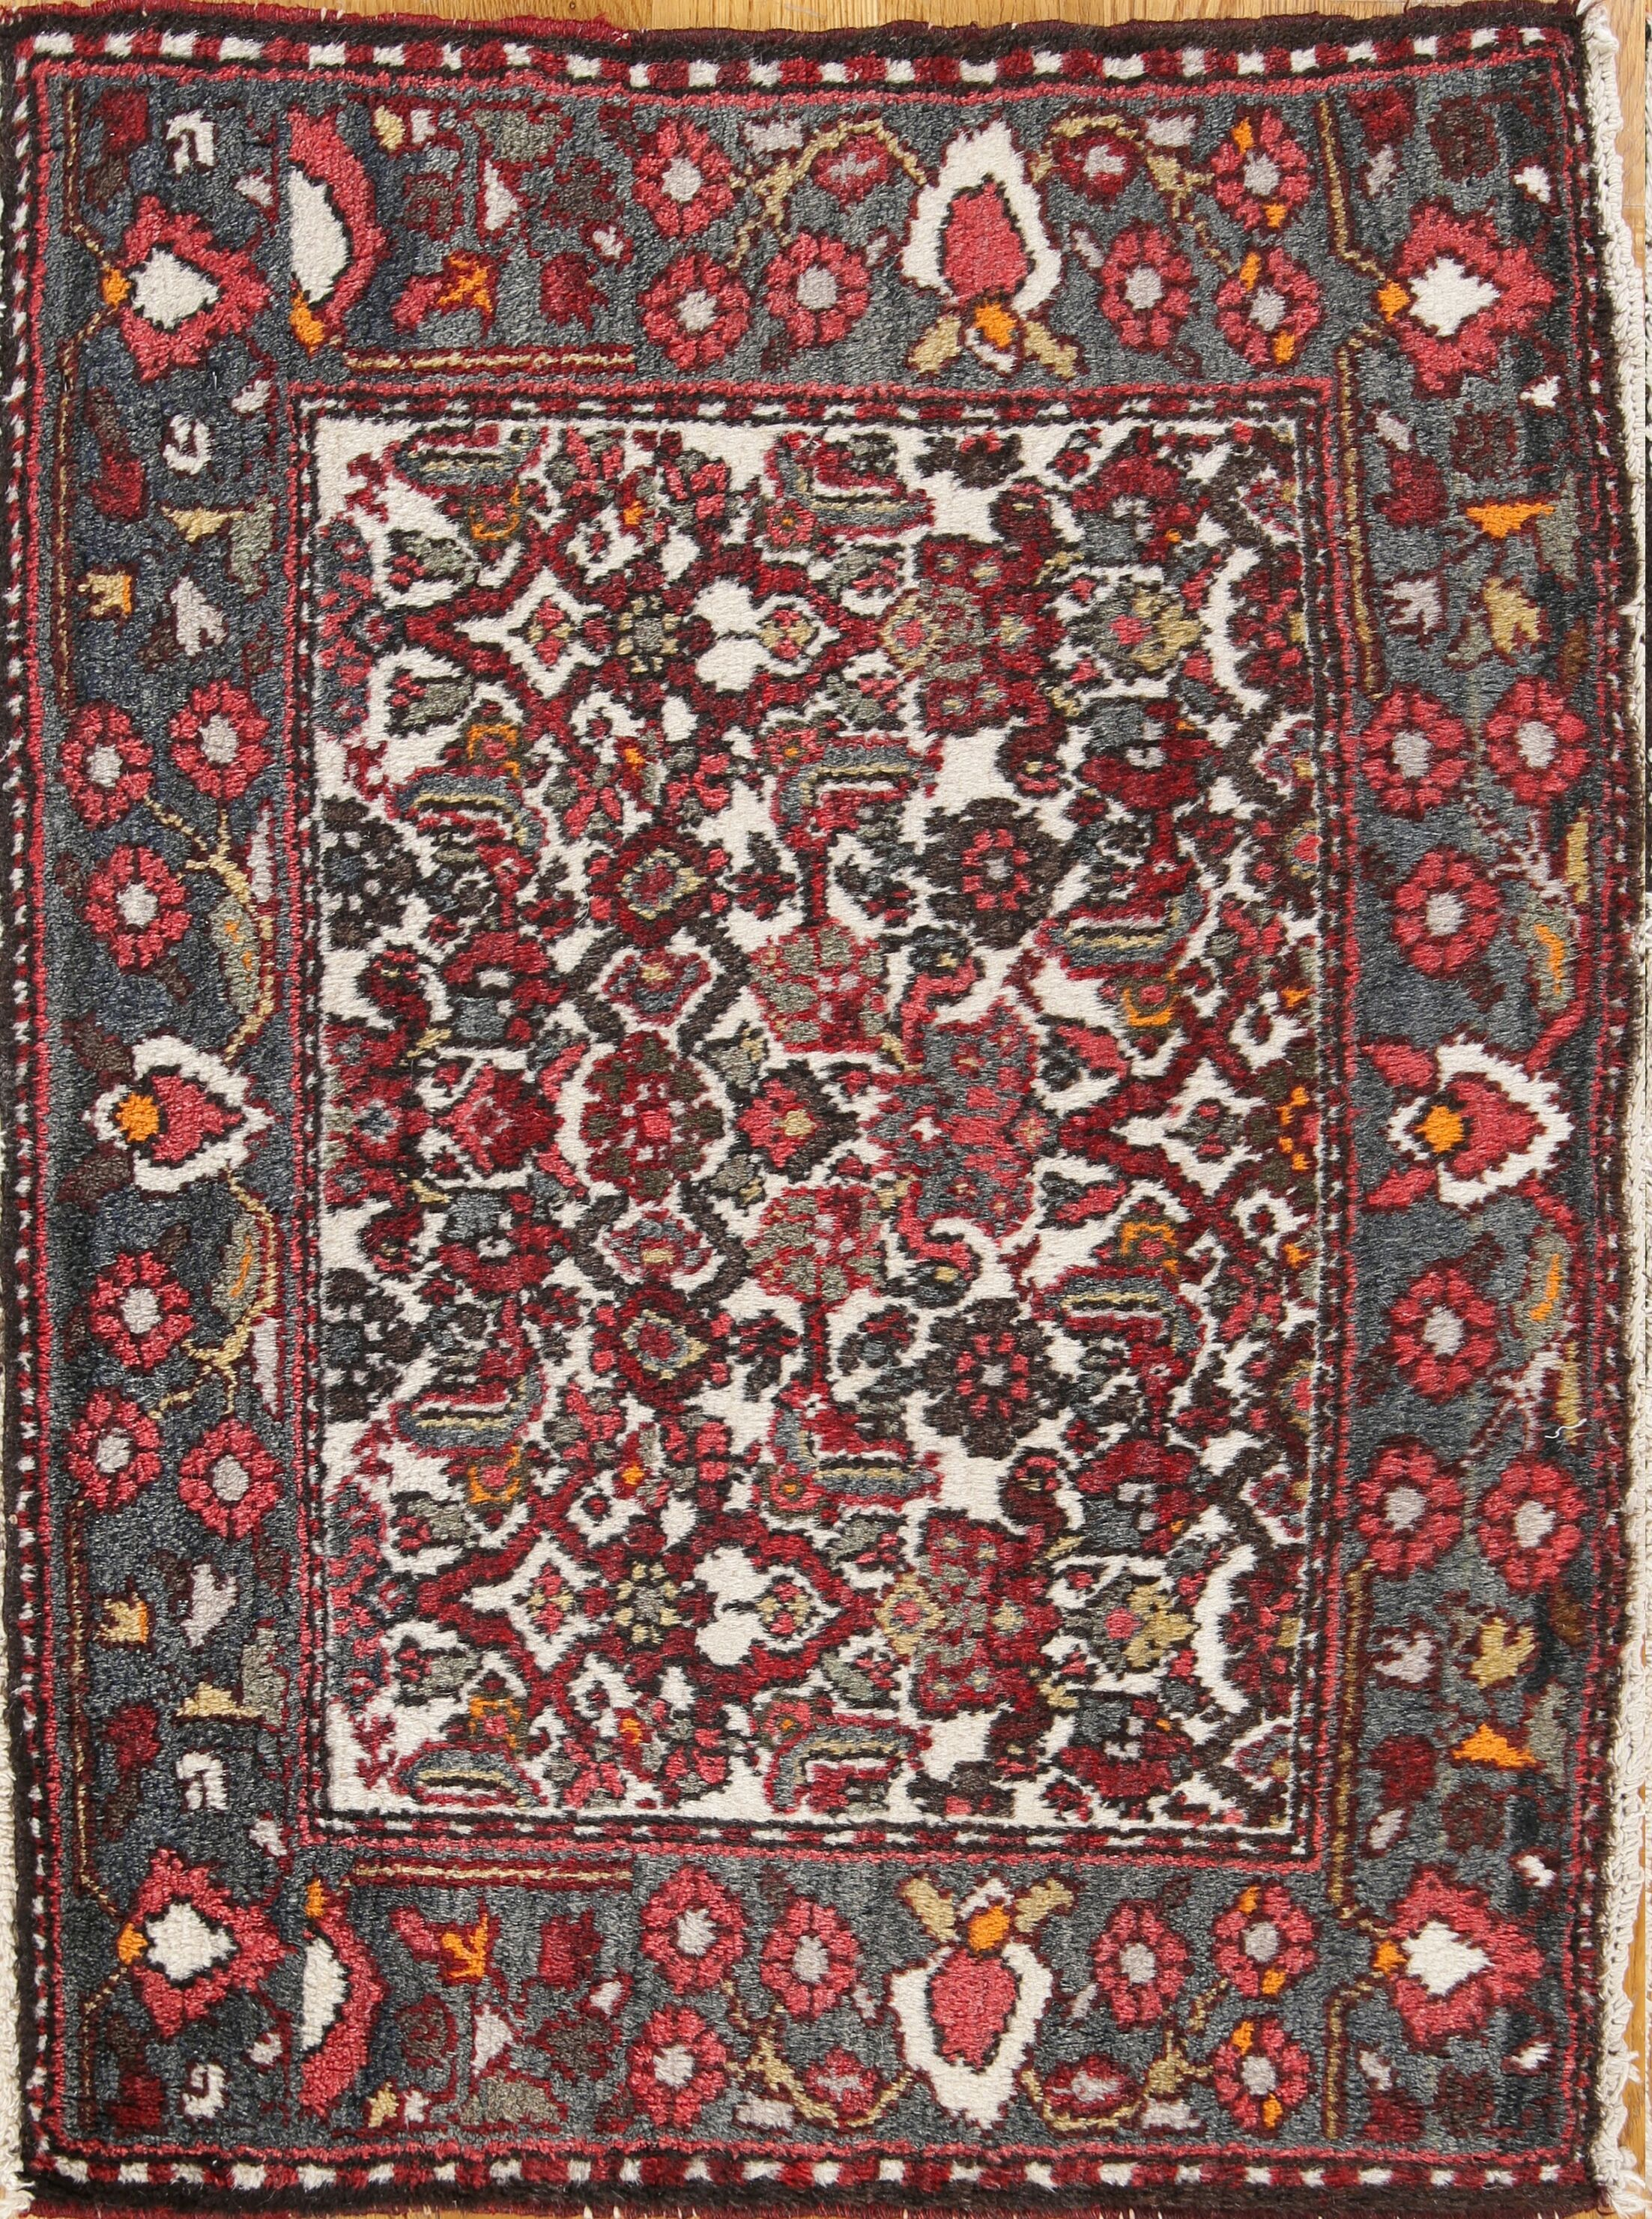 One-of-a-Kind Traditional Bakhtiari Persian Hand-Knotted 2' x 2'7'' Wool Gray/Burgundy Area Rug